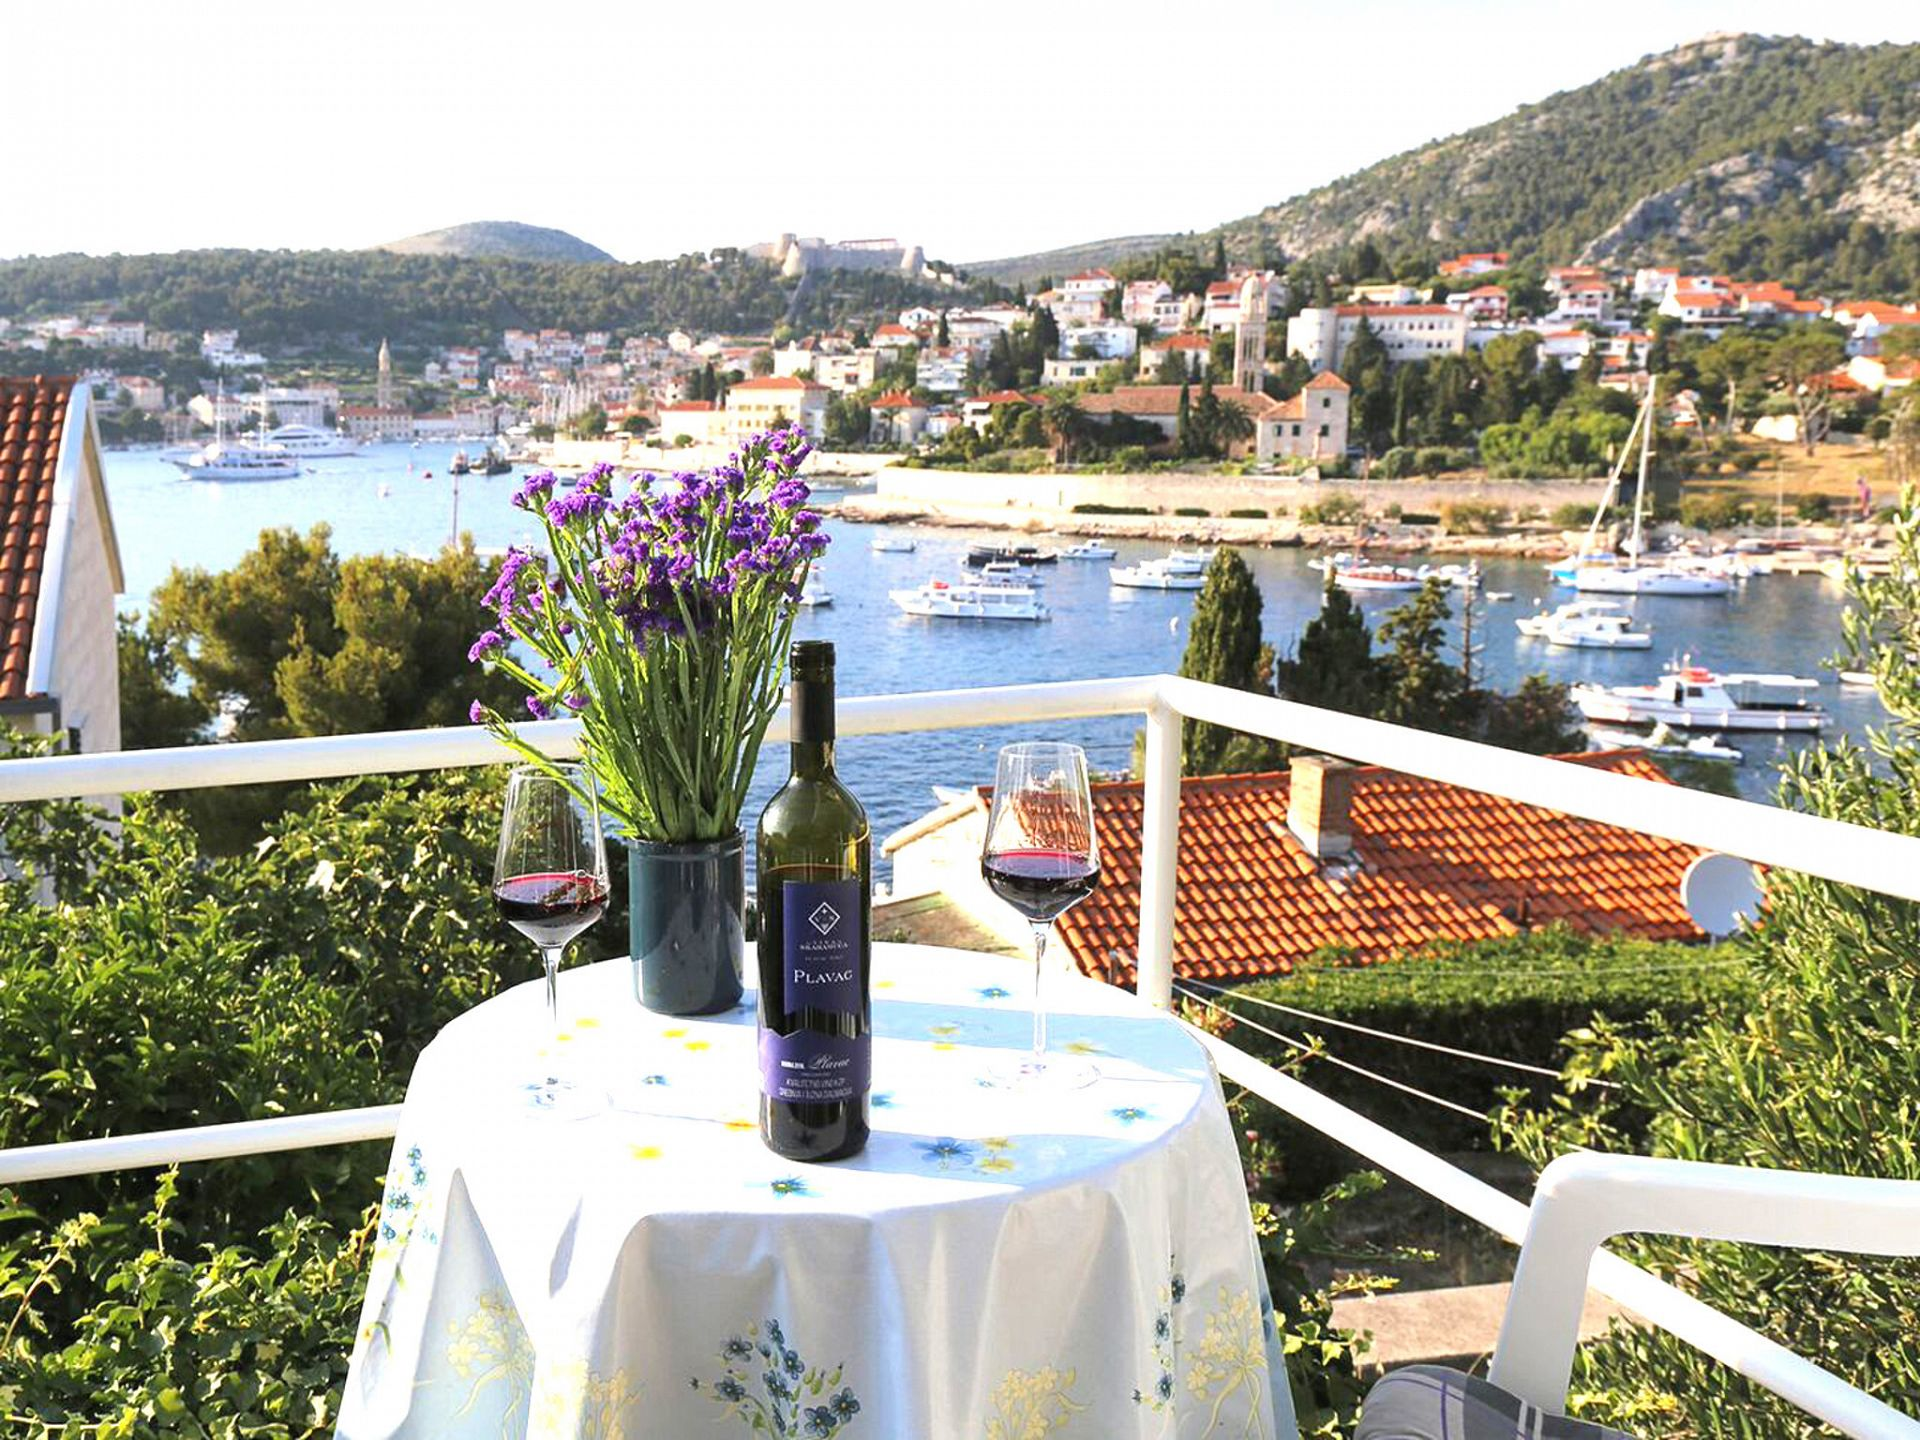 Holiday Homes, Hvar, Island of Hvar - Holiday houses, villas  Lovely place